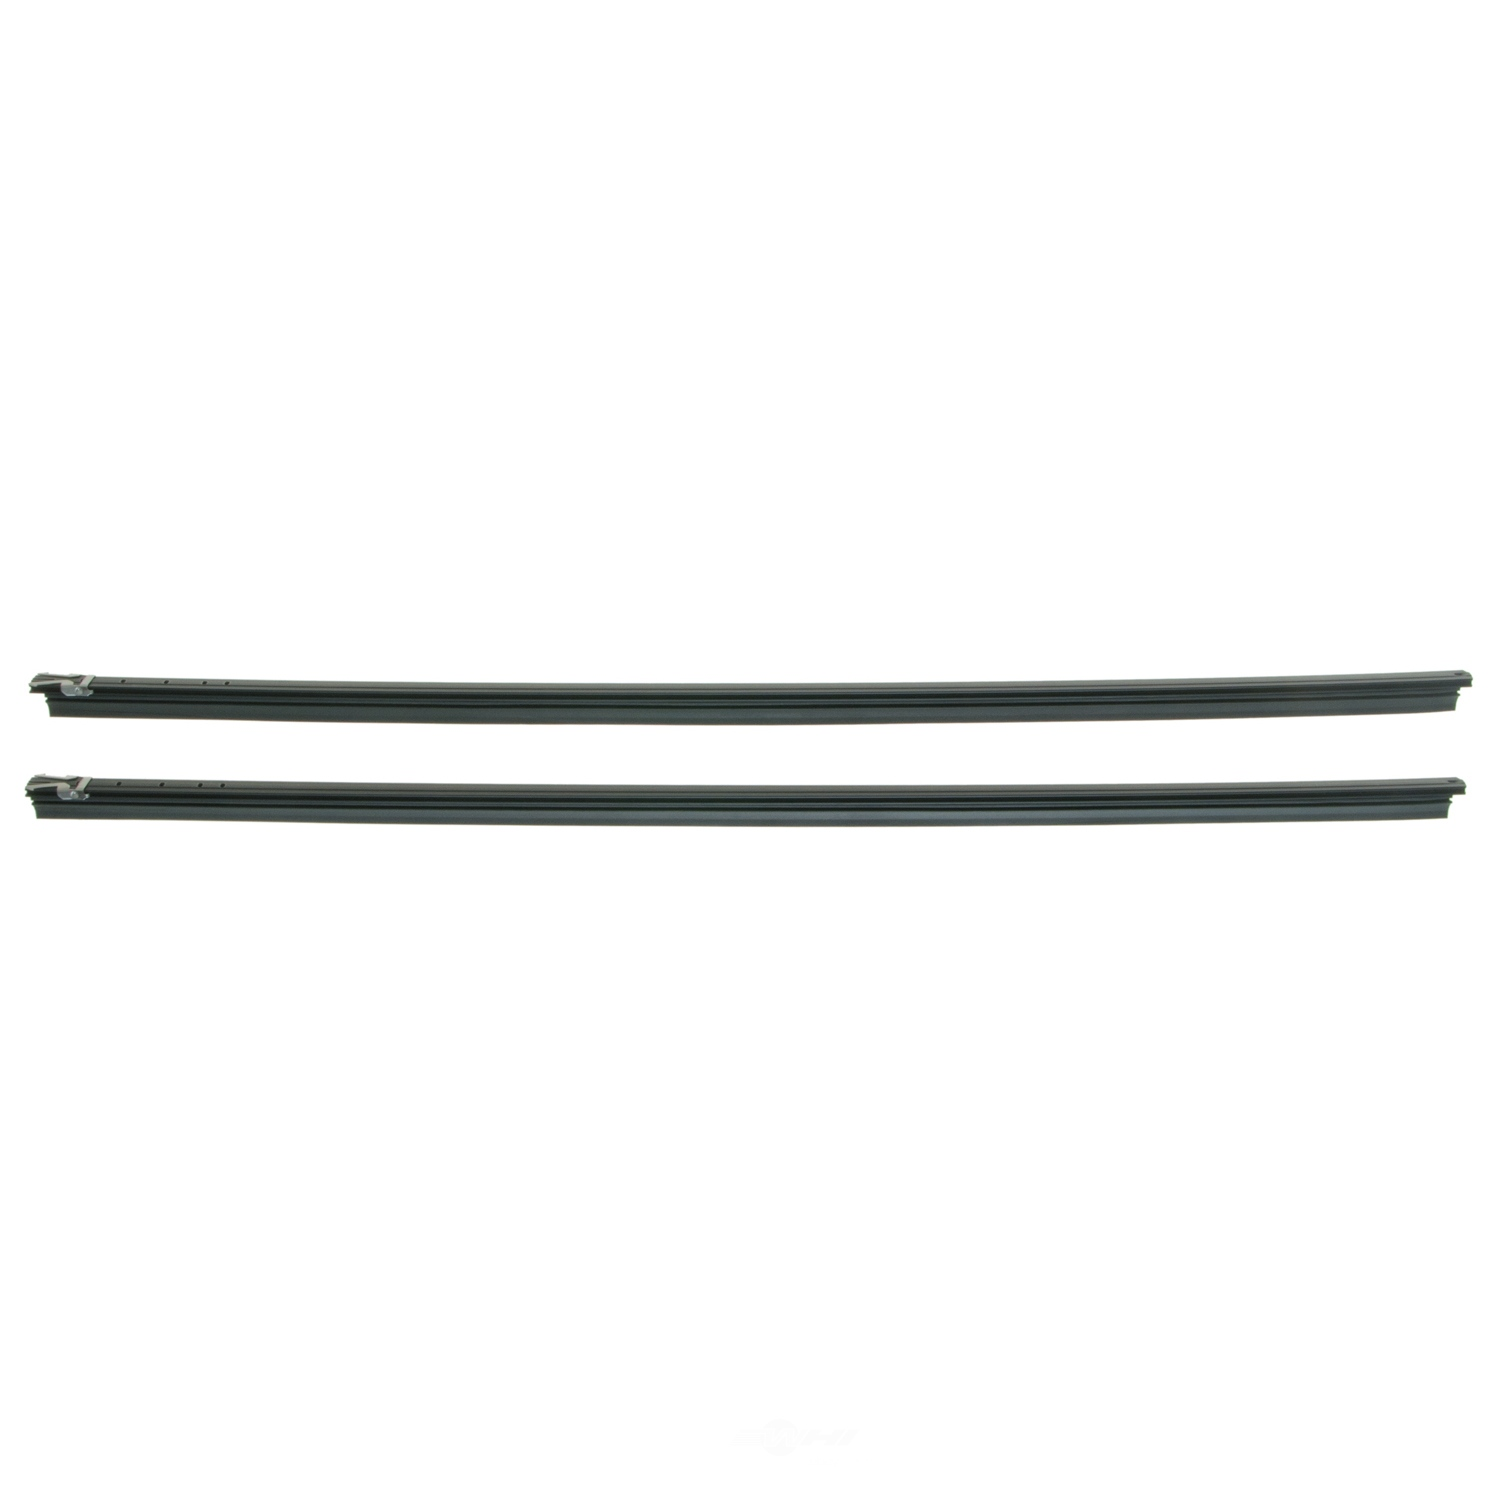 ANCO WIPER PRODUCTS - Universal Series Refills - ANC U-17R